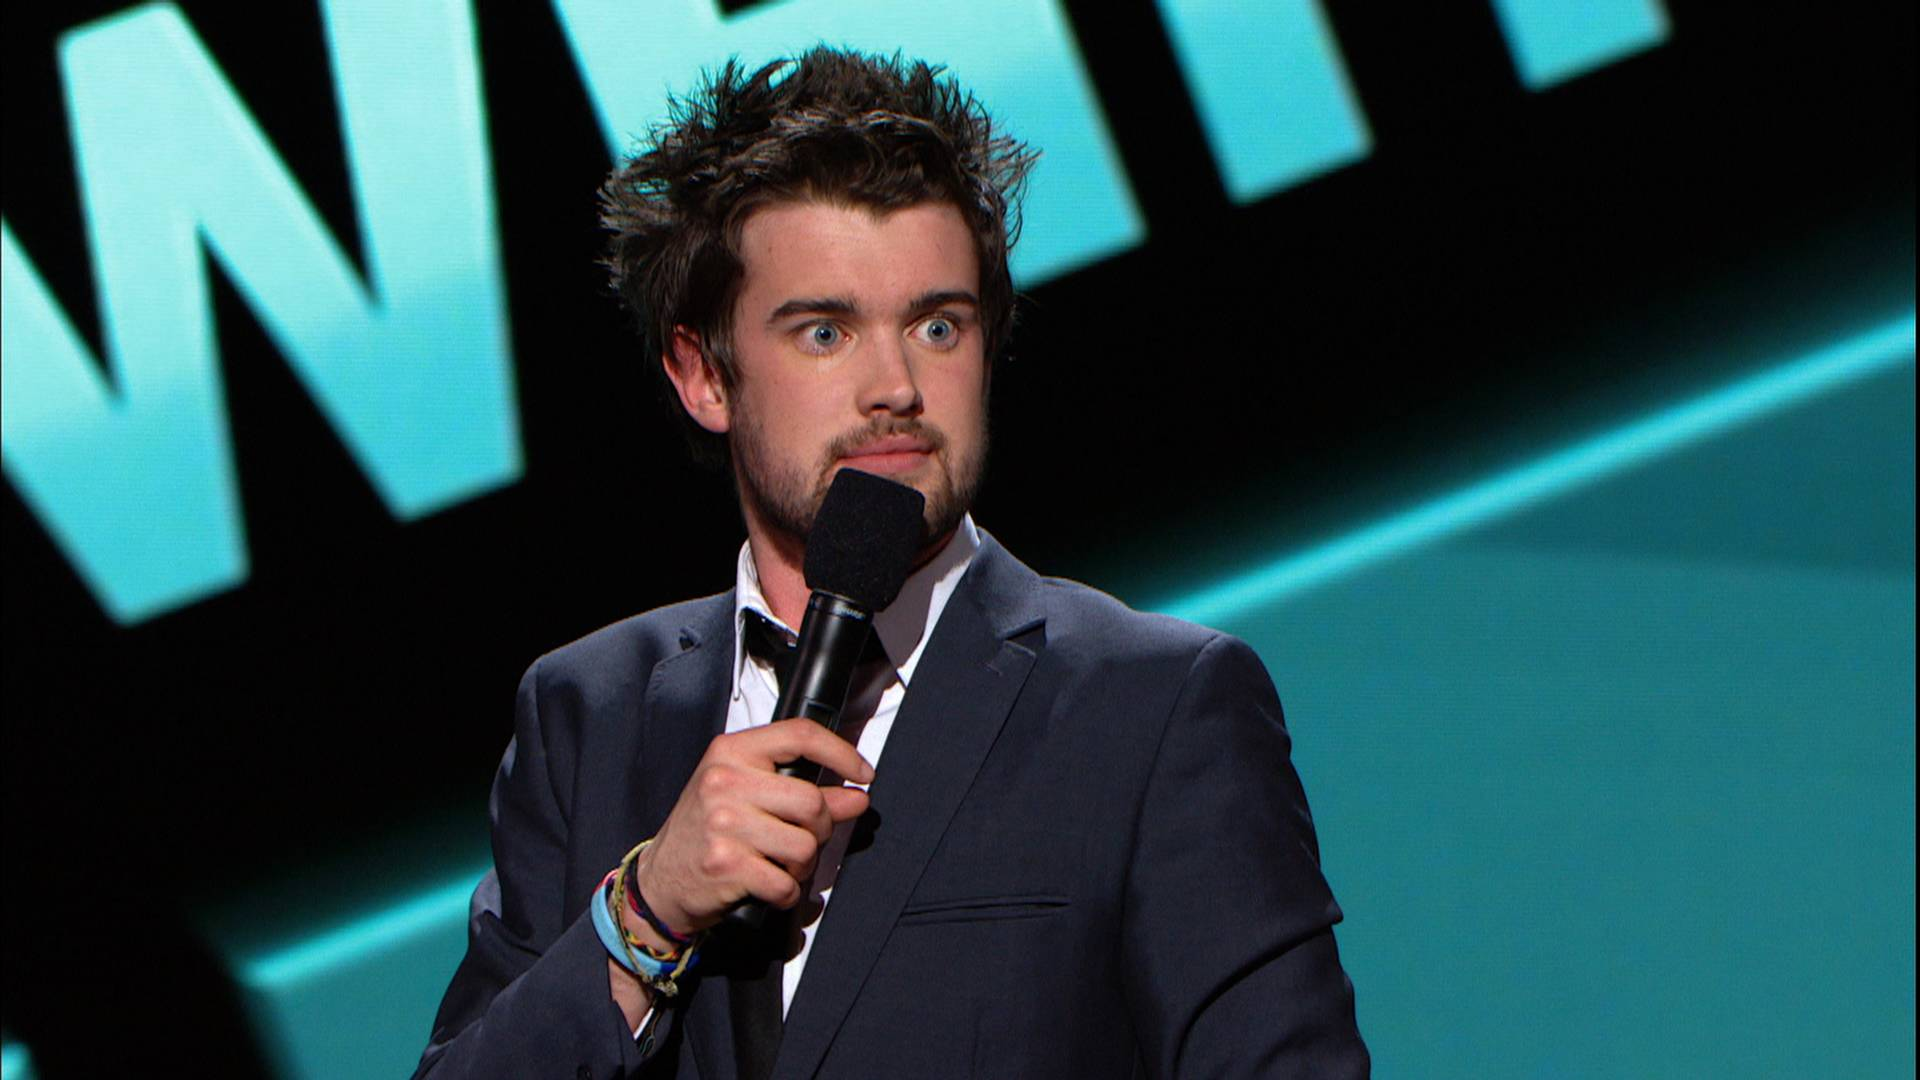 DL fave Jack Whitehall reveals all